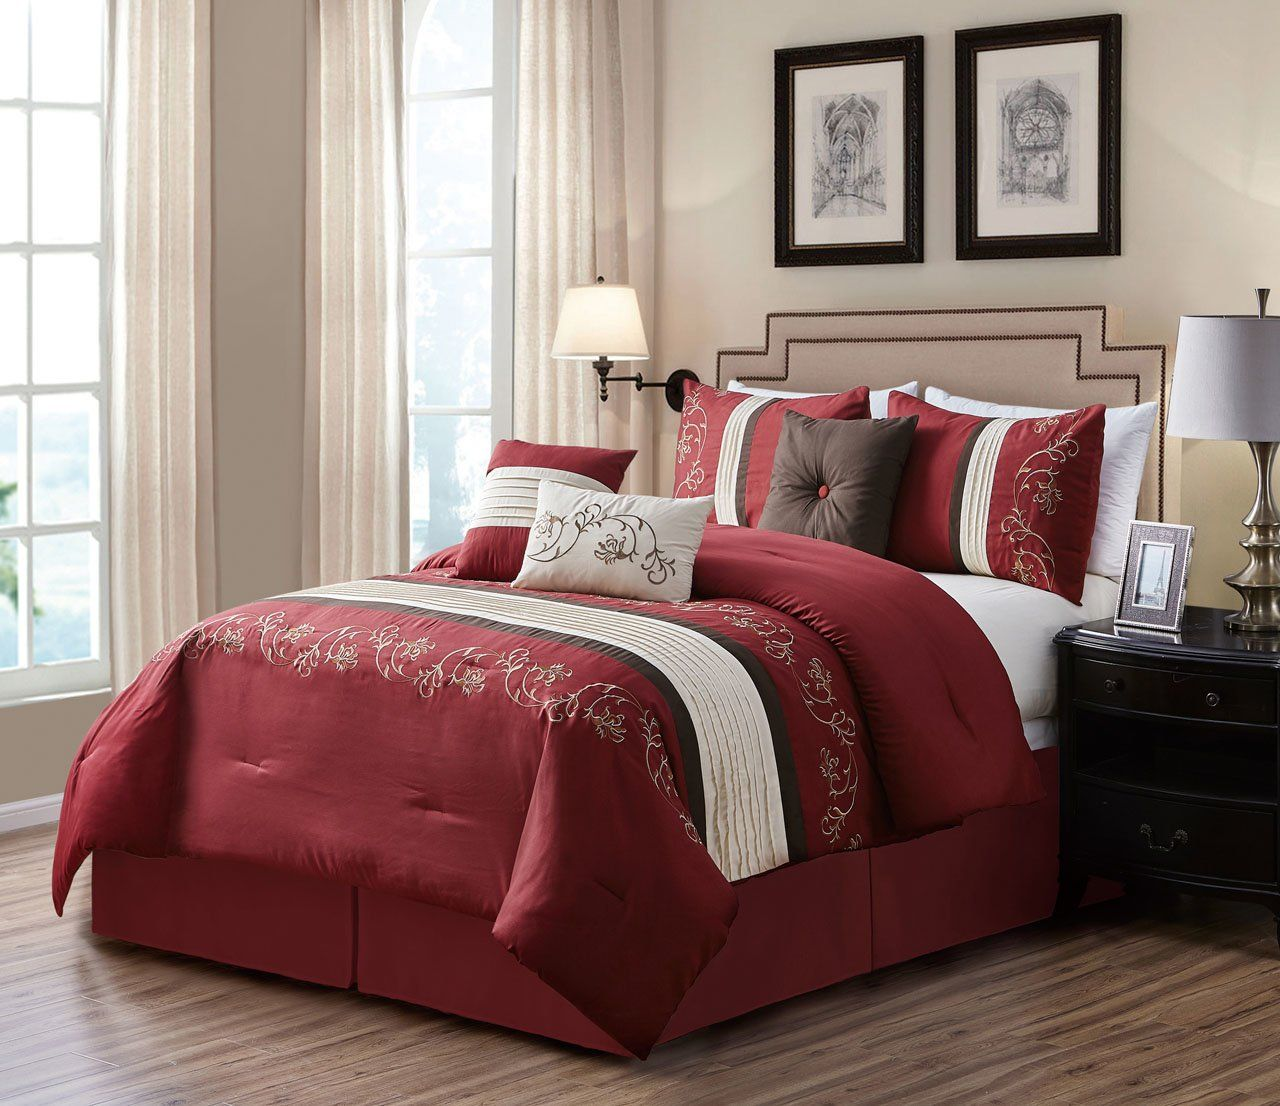 7 Piece Canace Burgundy Ivory Comforter Set With Images Comforter Sets Ivory Comforter Master Bedroom Interior Design